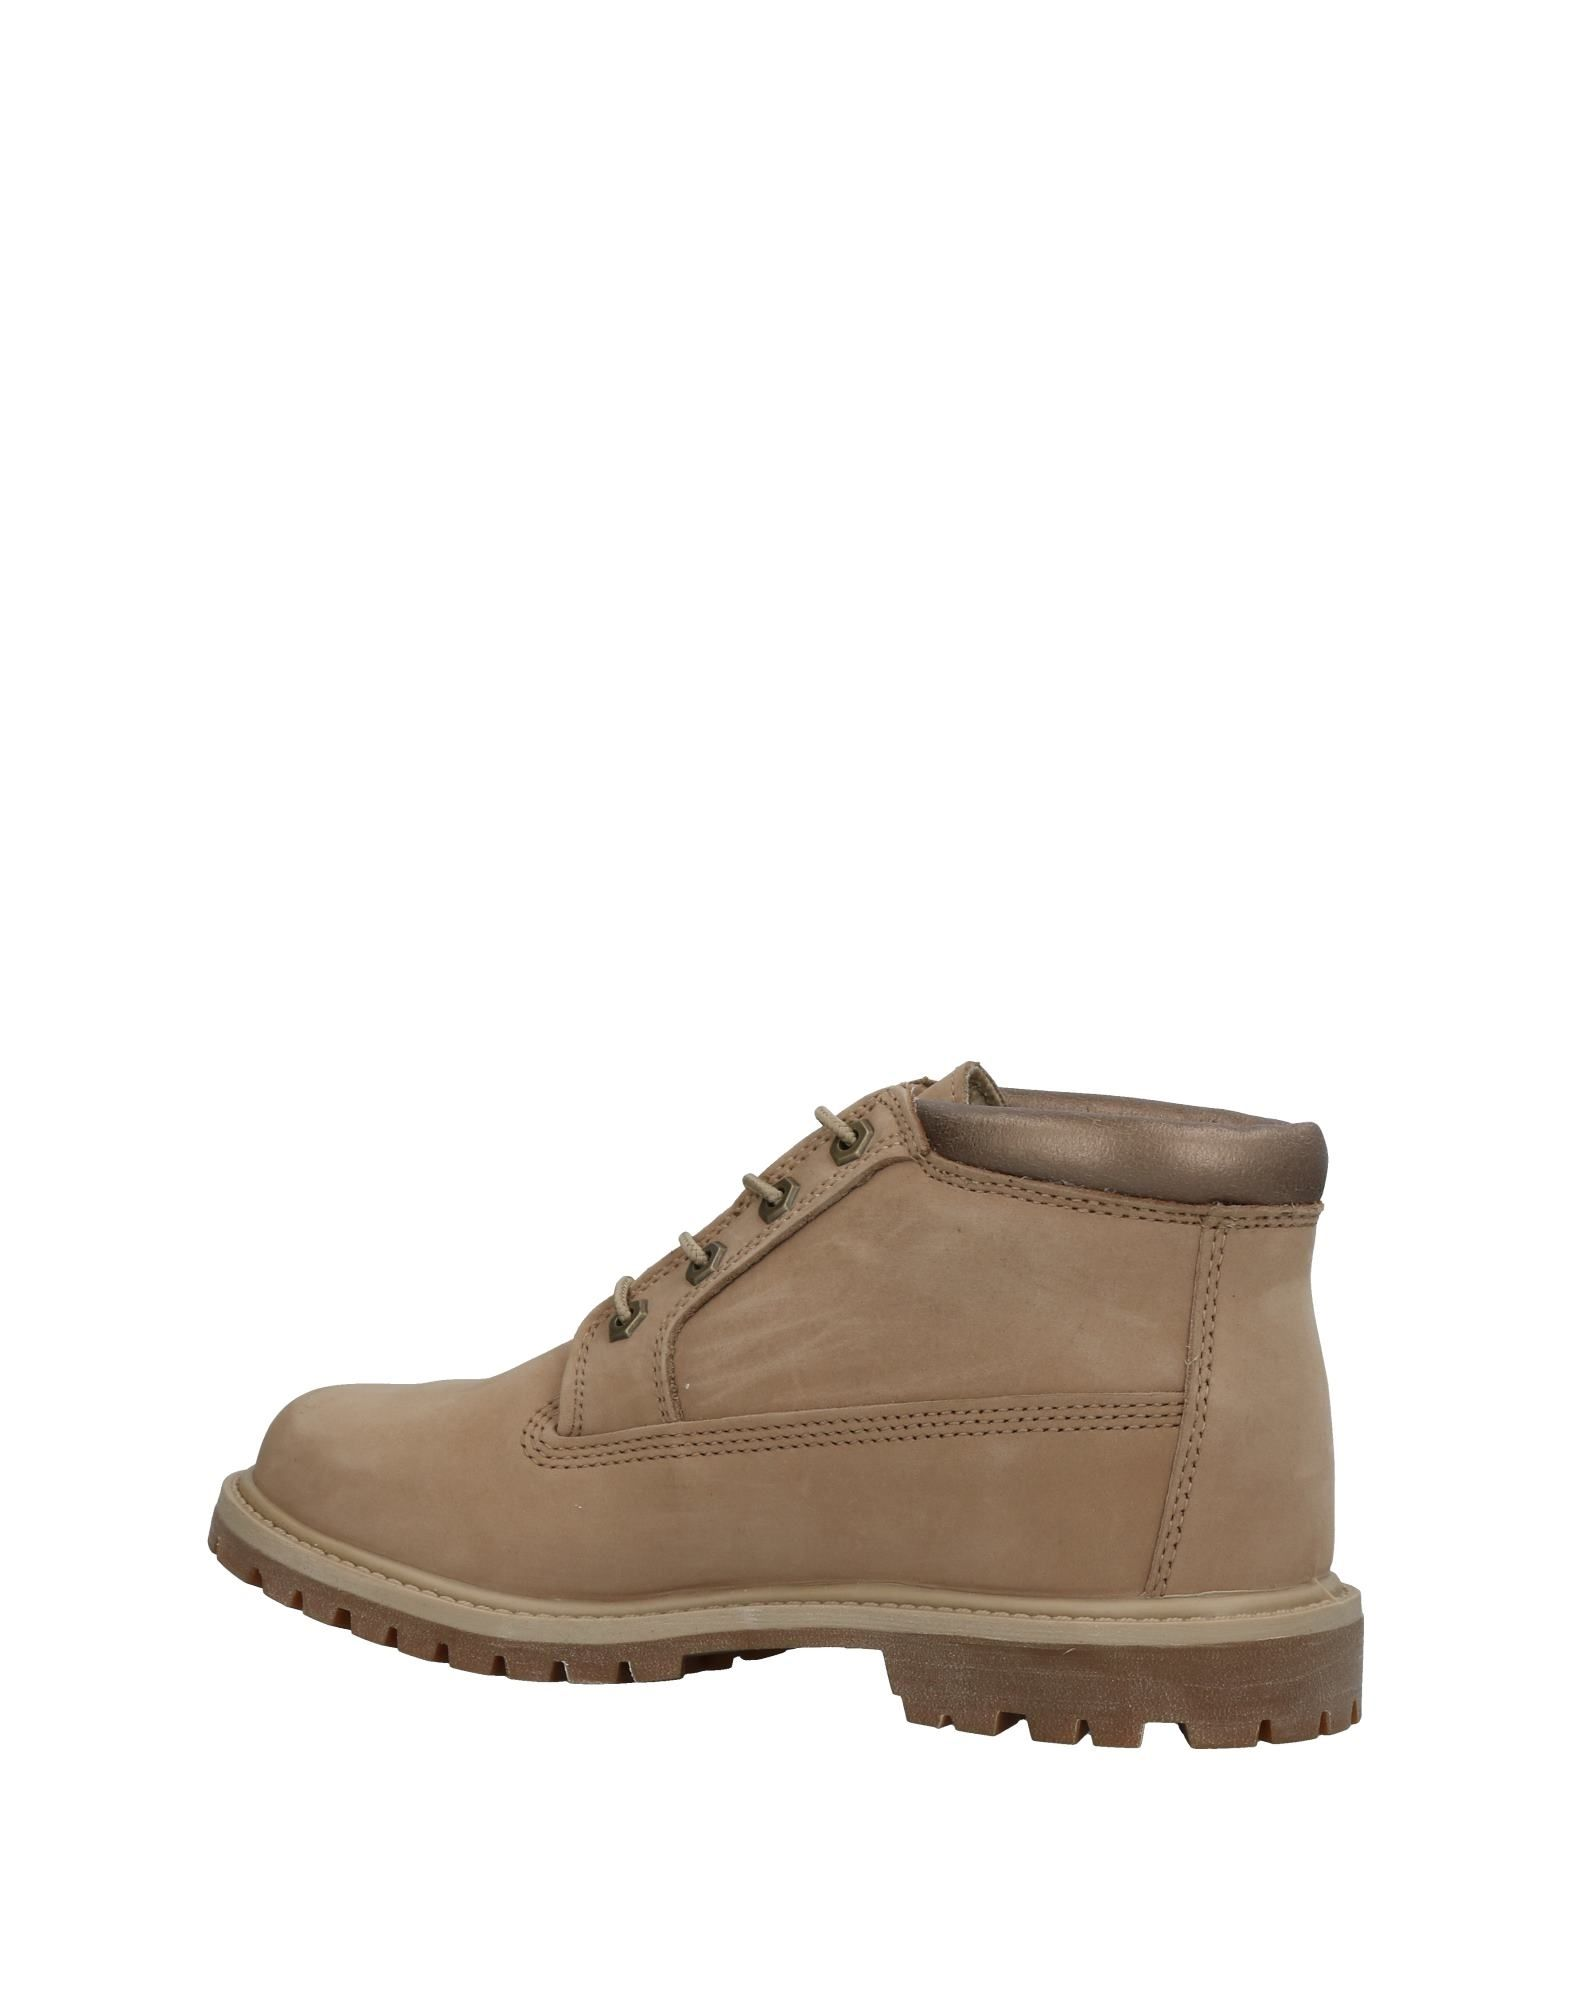 Bottine Timberland Femme - Bottines Timberland sur